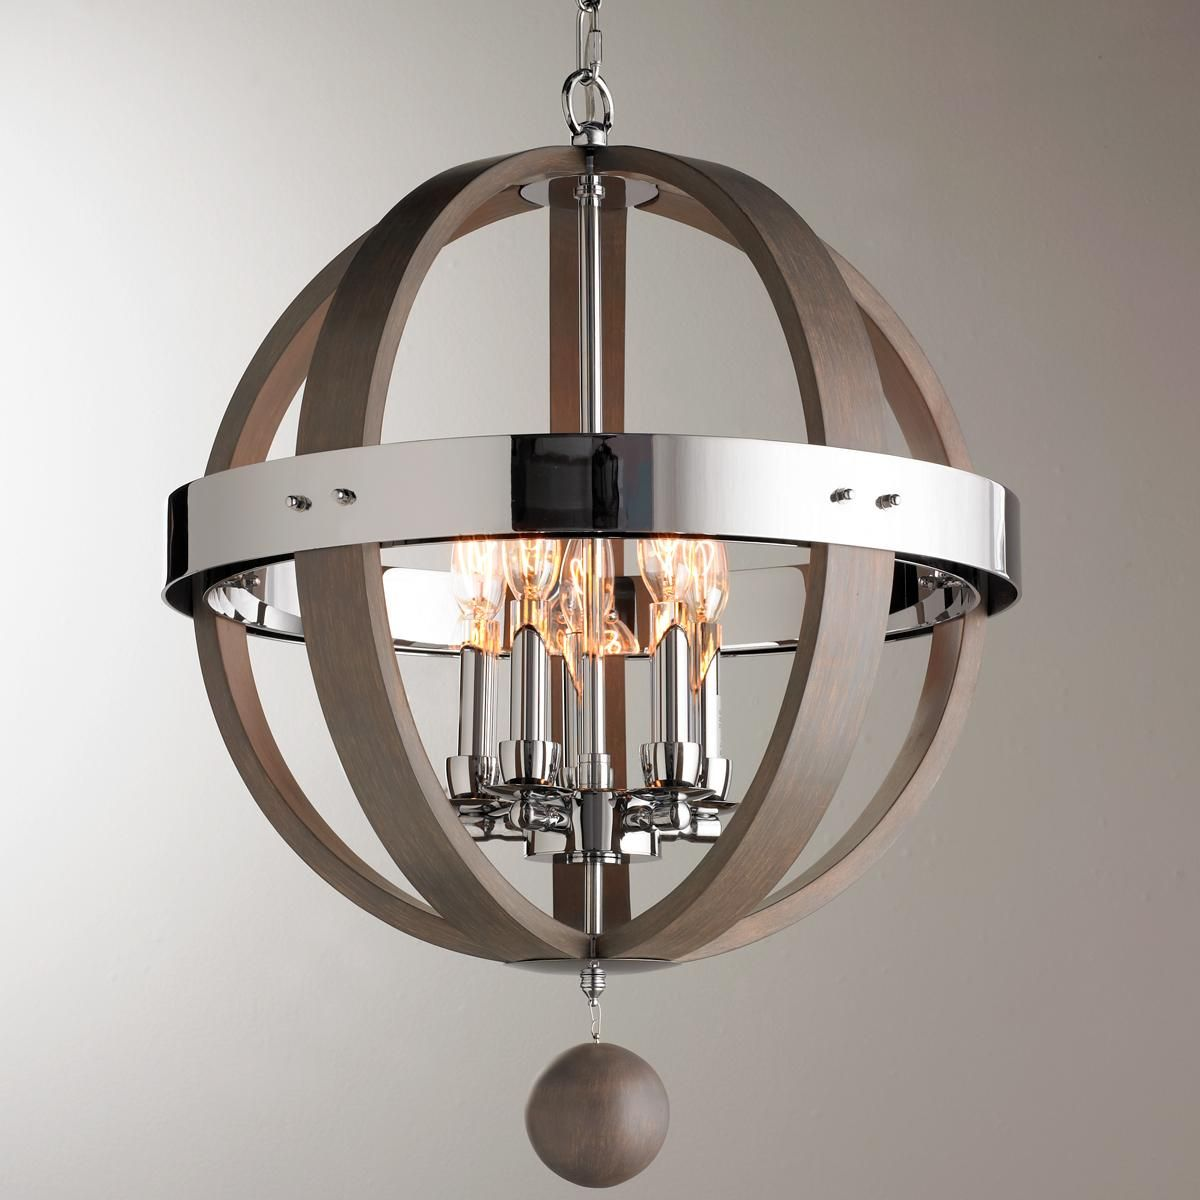 White washed wood sphere chandelier chandeliers by shades of light - Wood And Chrome Barrel Sphere Chandelier